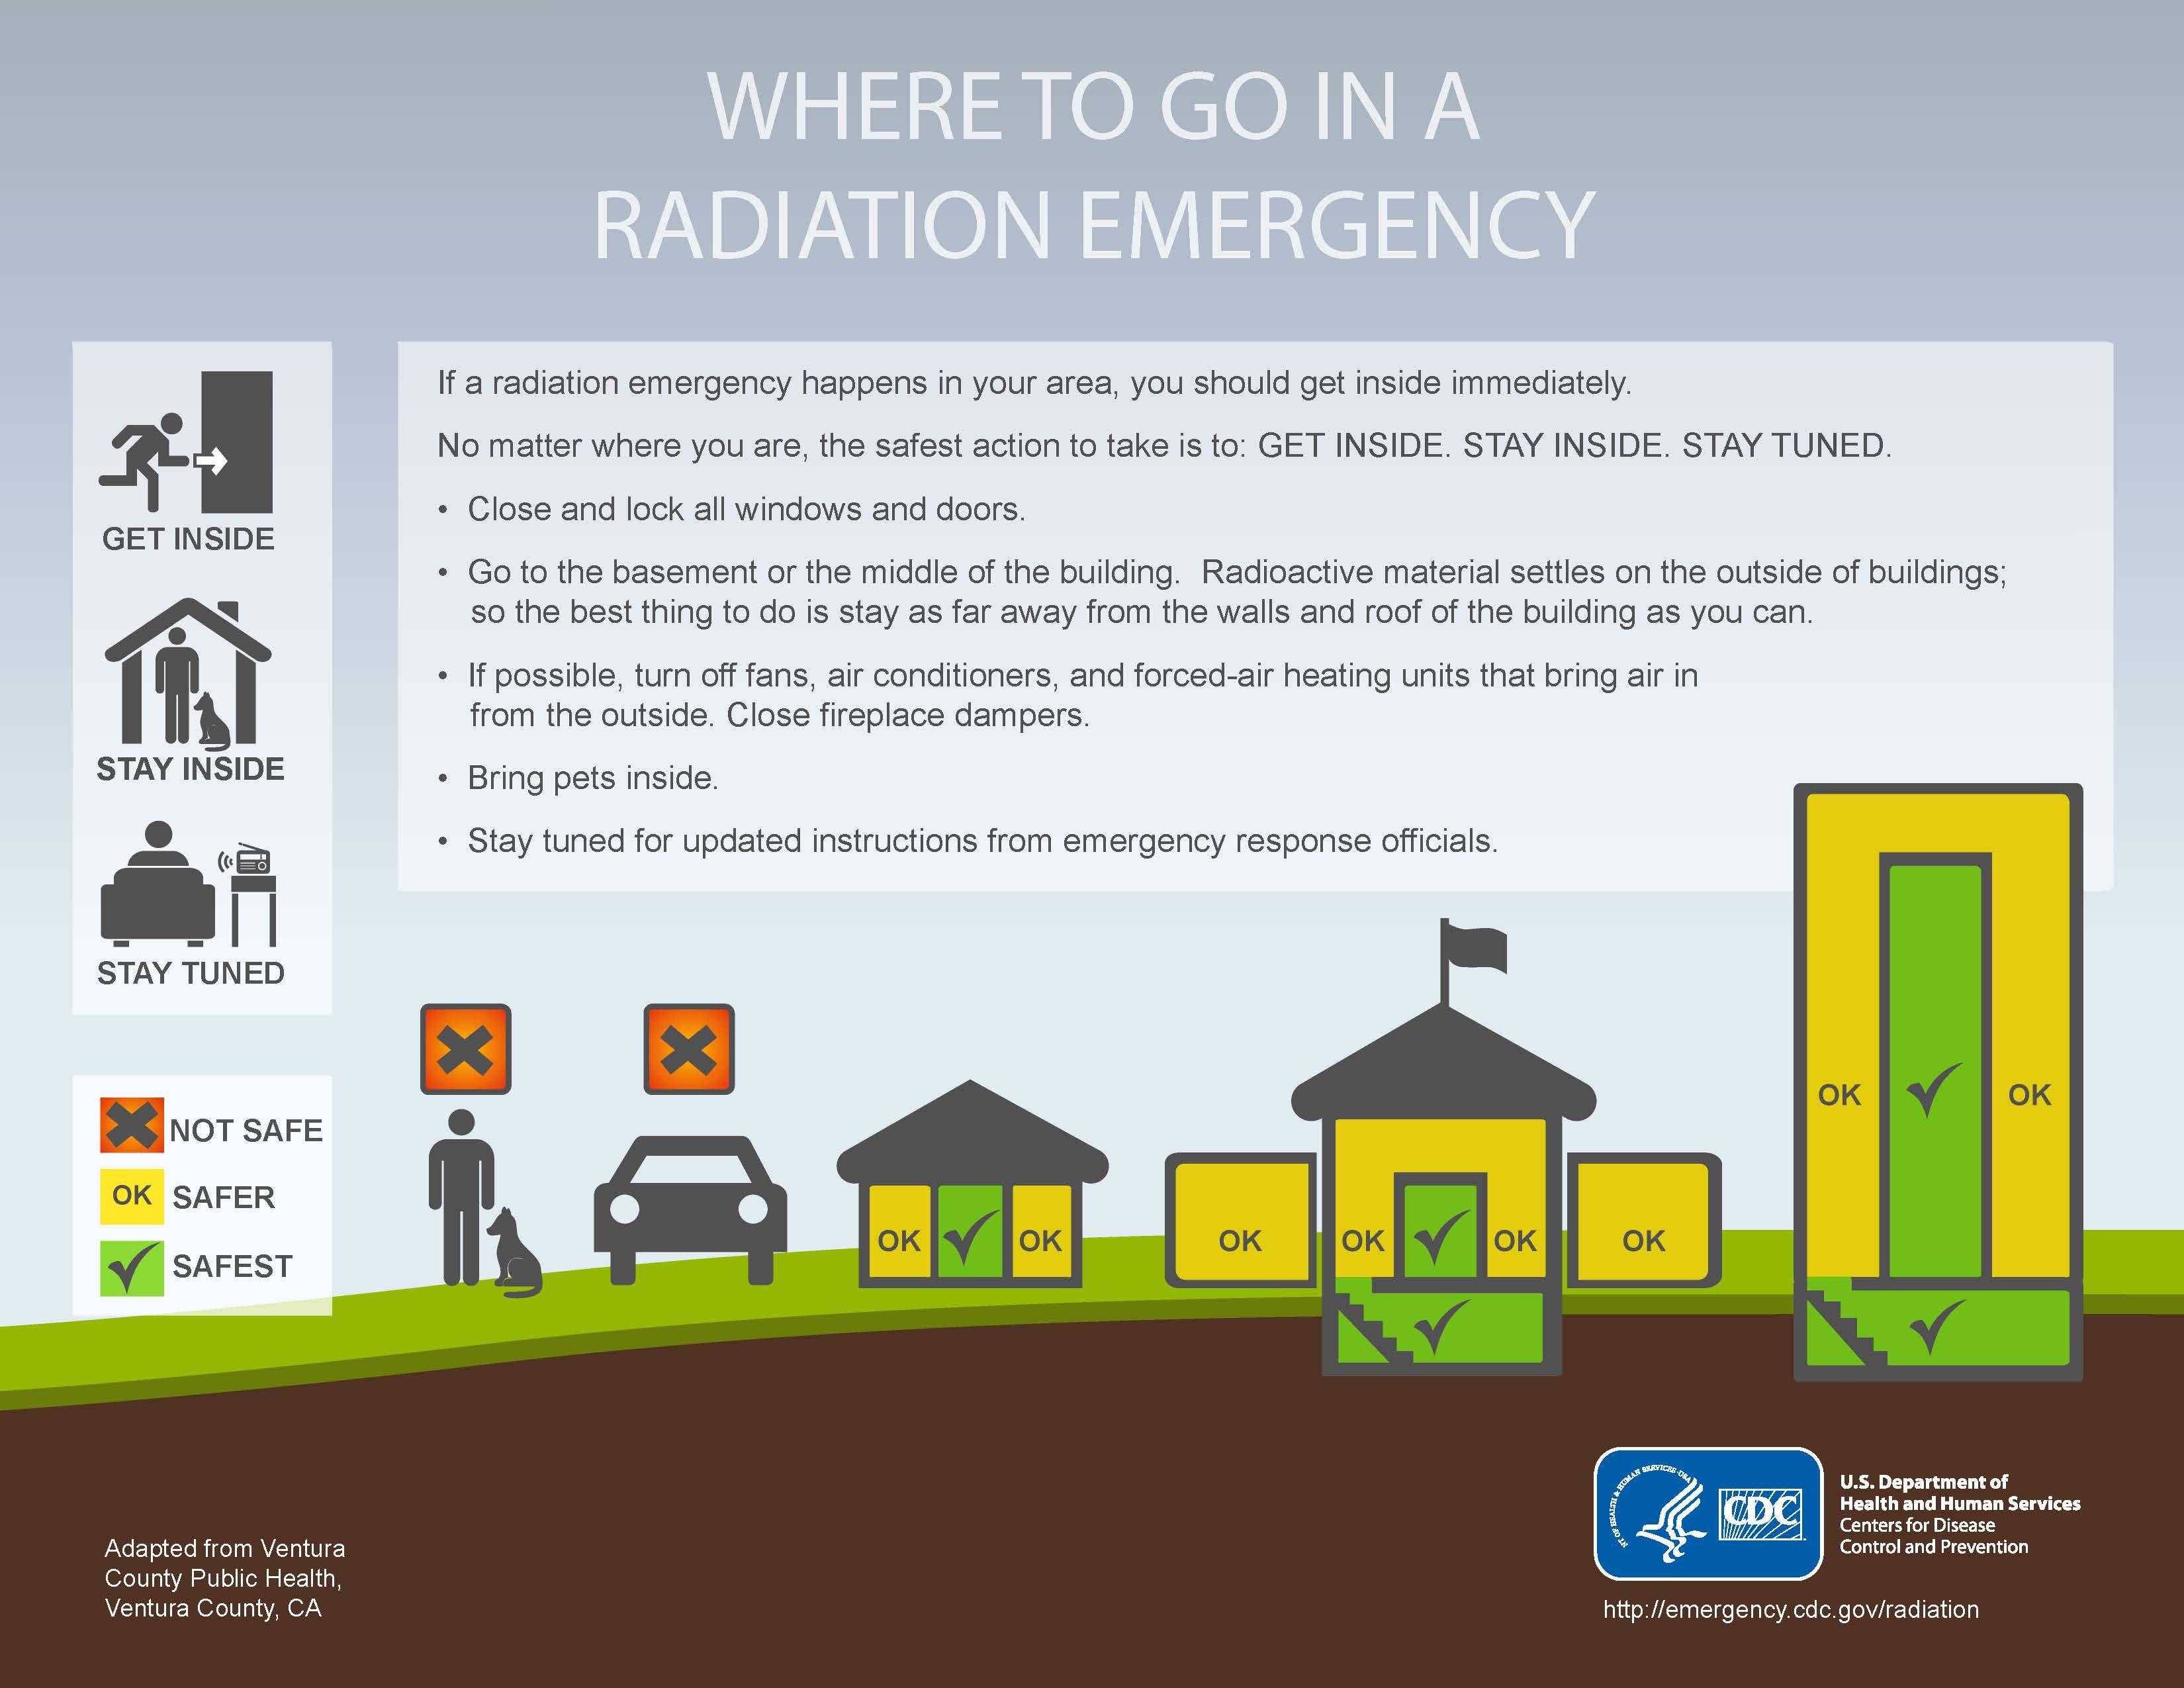 where to go in radiation emergency infographic